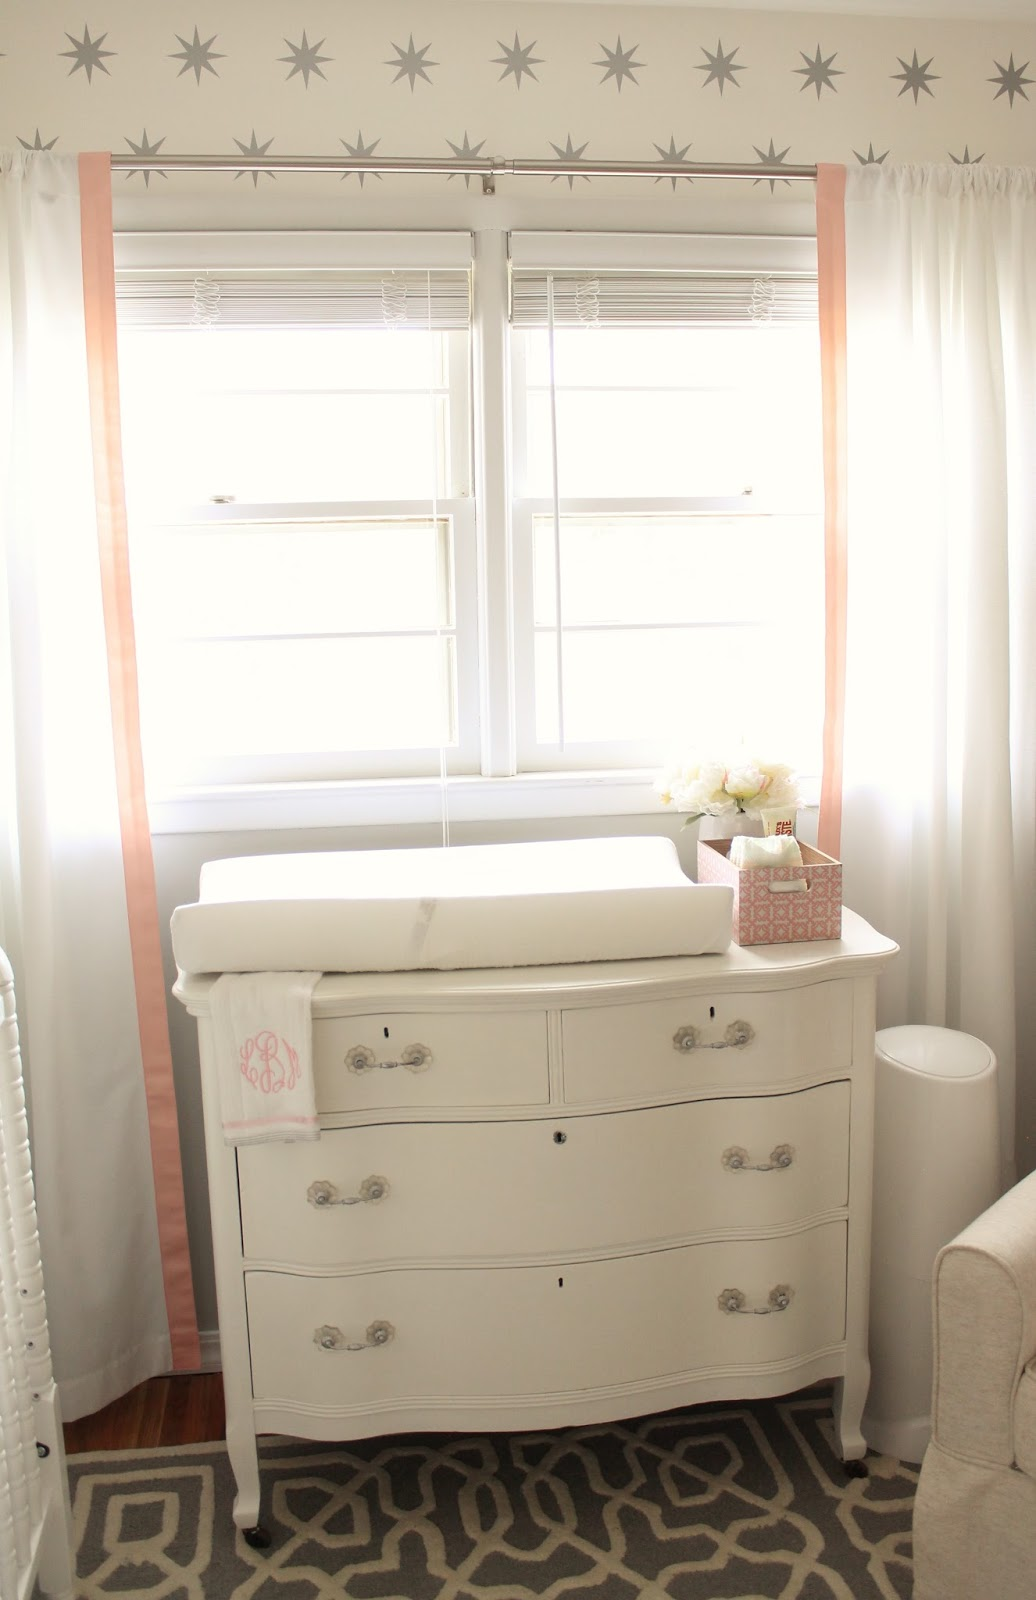 My Mother In Law Painted The Antique Dresser For Me. Which Weu0027re Using As A Changing  Table. I Love That We Can Continue To Use This Piece Even After The ...